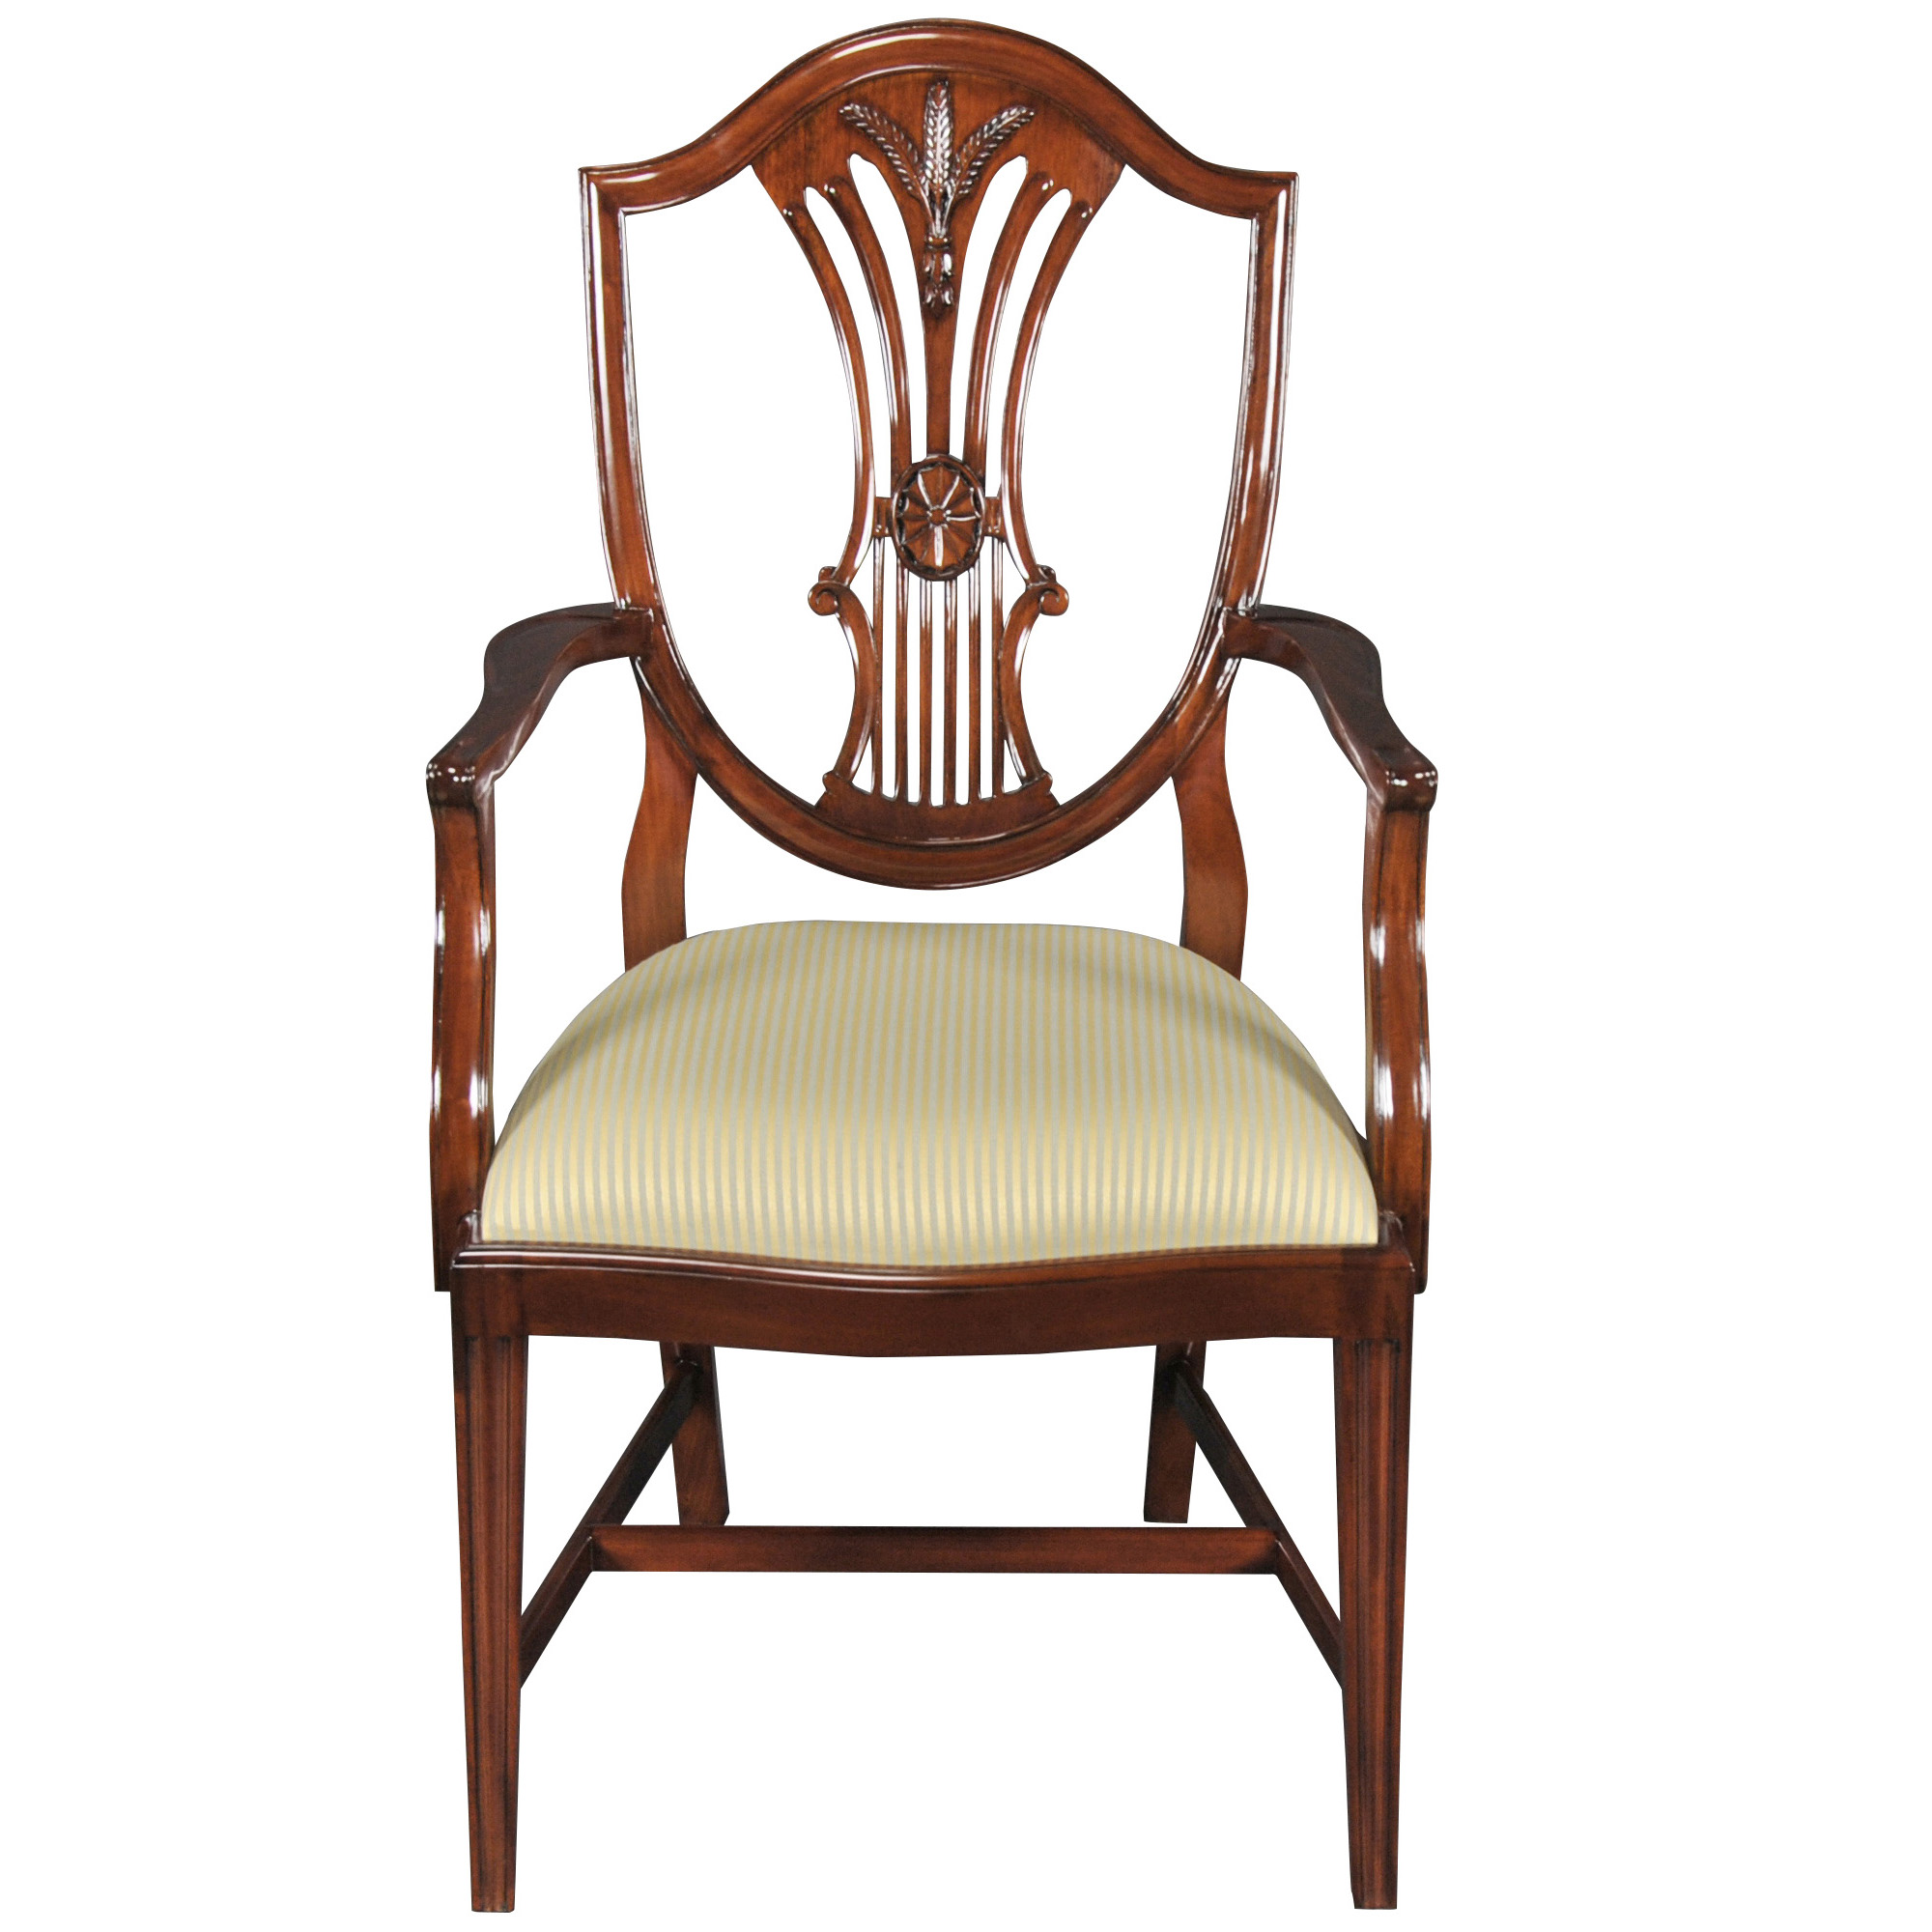 Shield Back Dining Room Chairs: Shield Back Dining Room Arm Chair, Niagara Furniture, Free